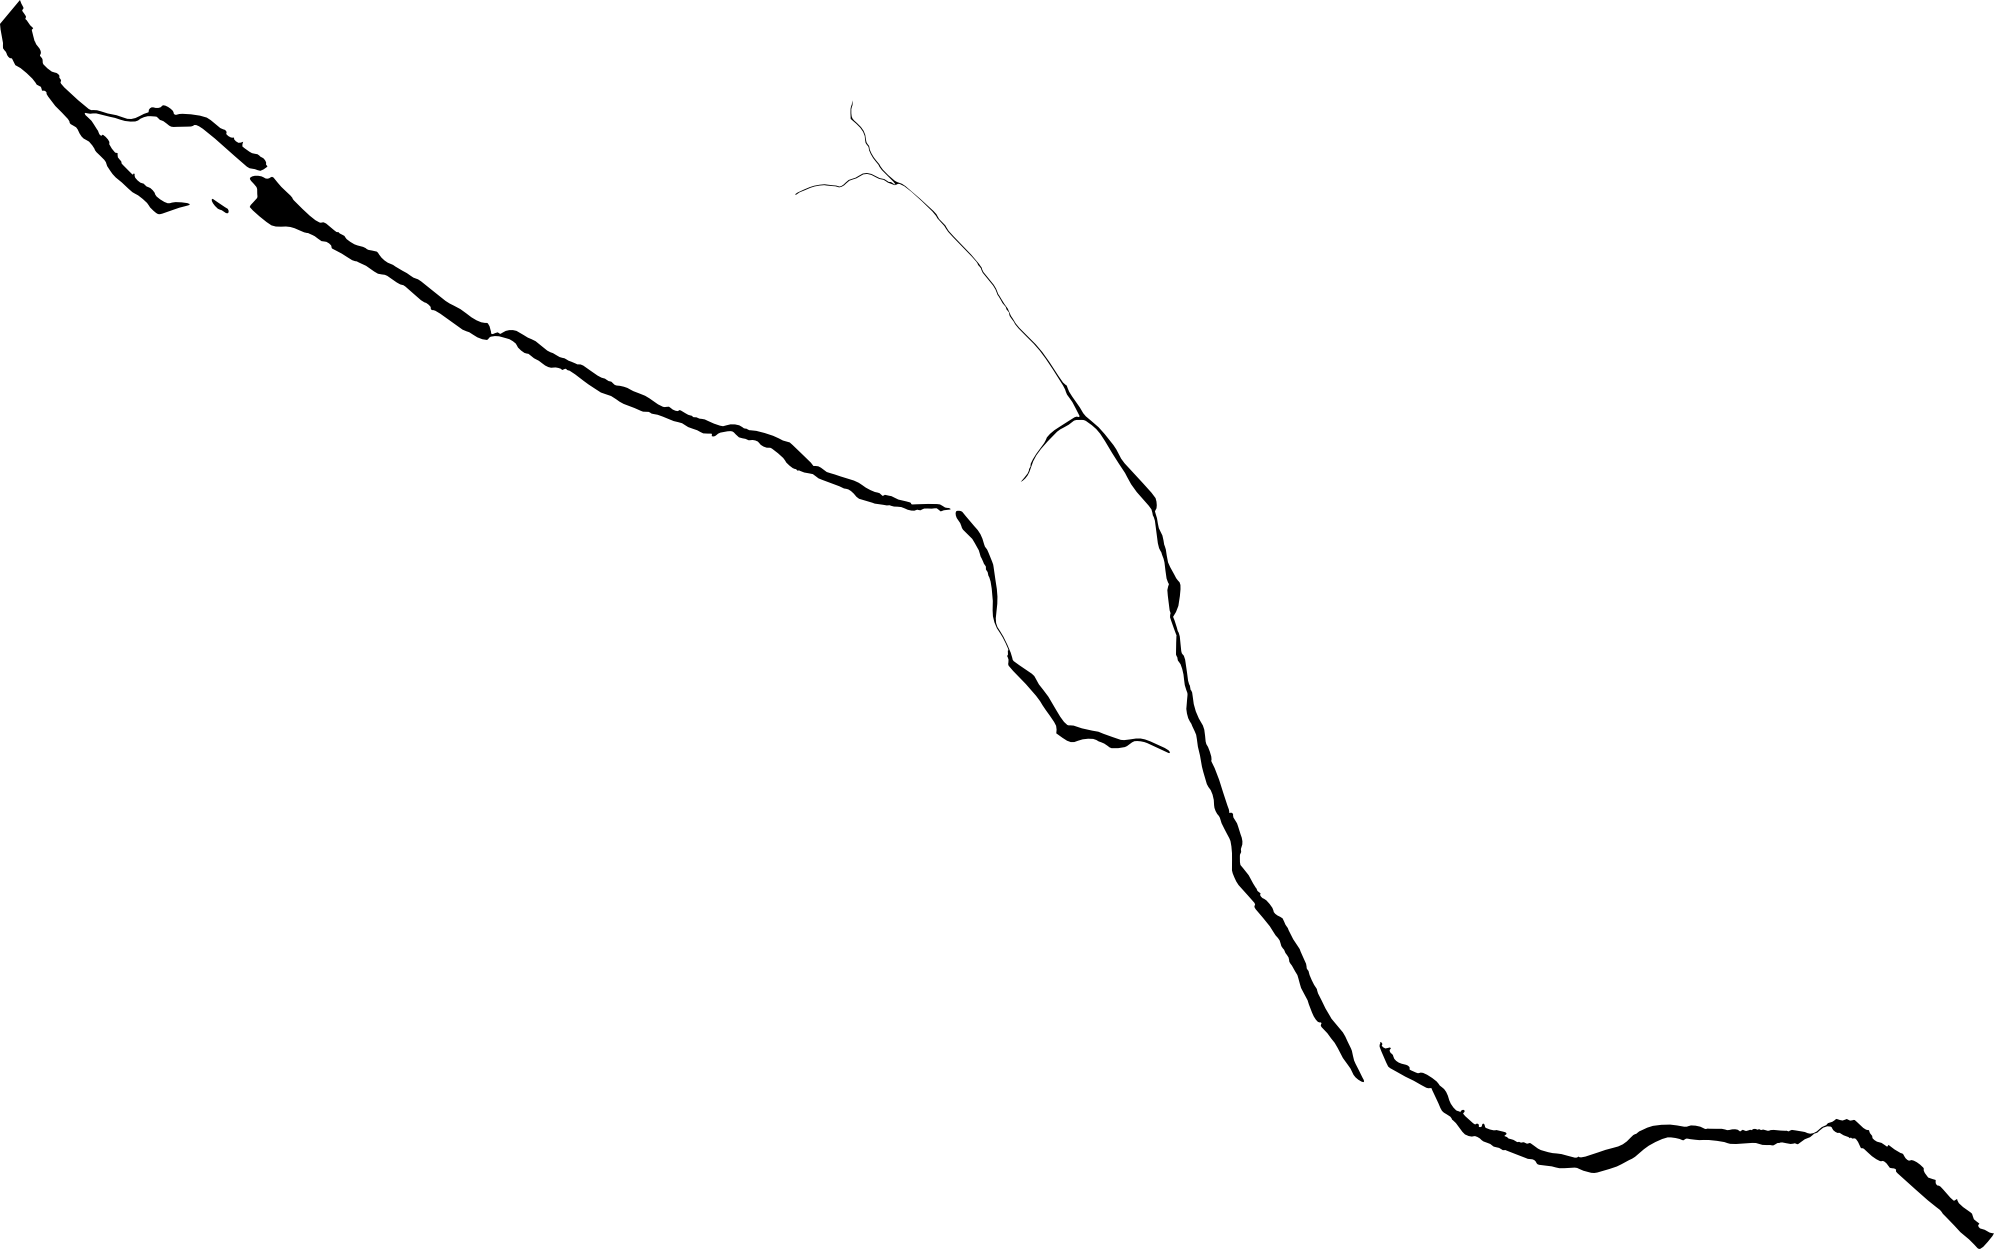 Crack png. Transparent onlygfx com